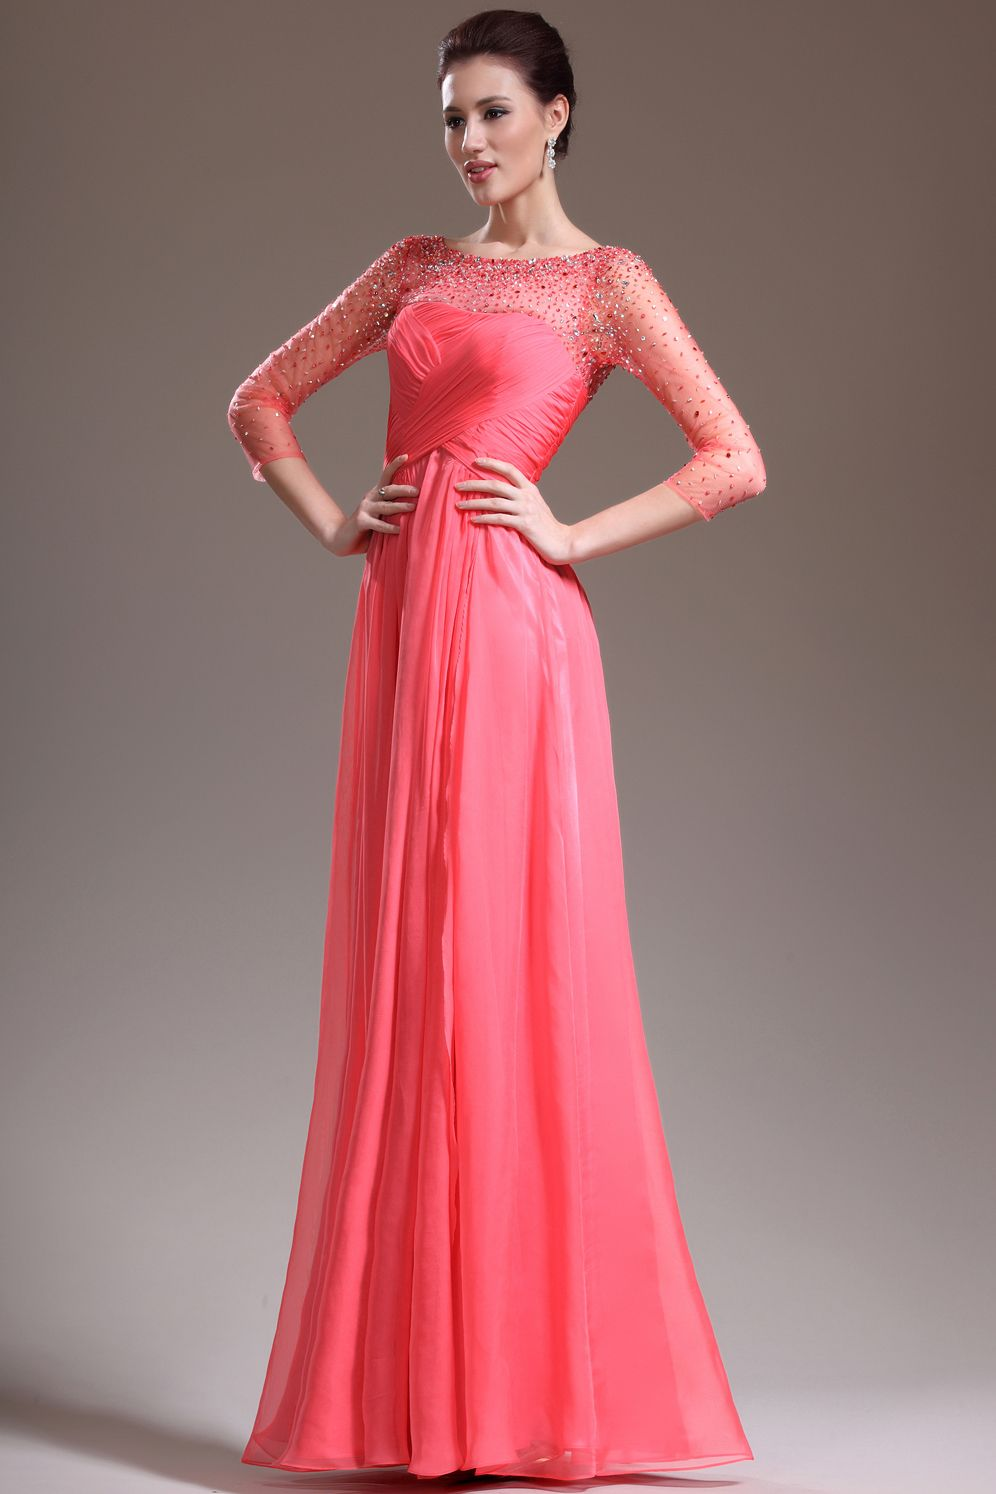 New arrival length sleeve a line floor length prom dresses